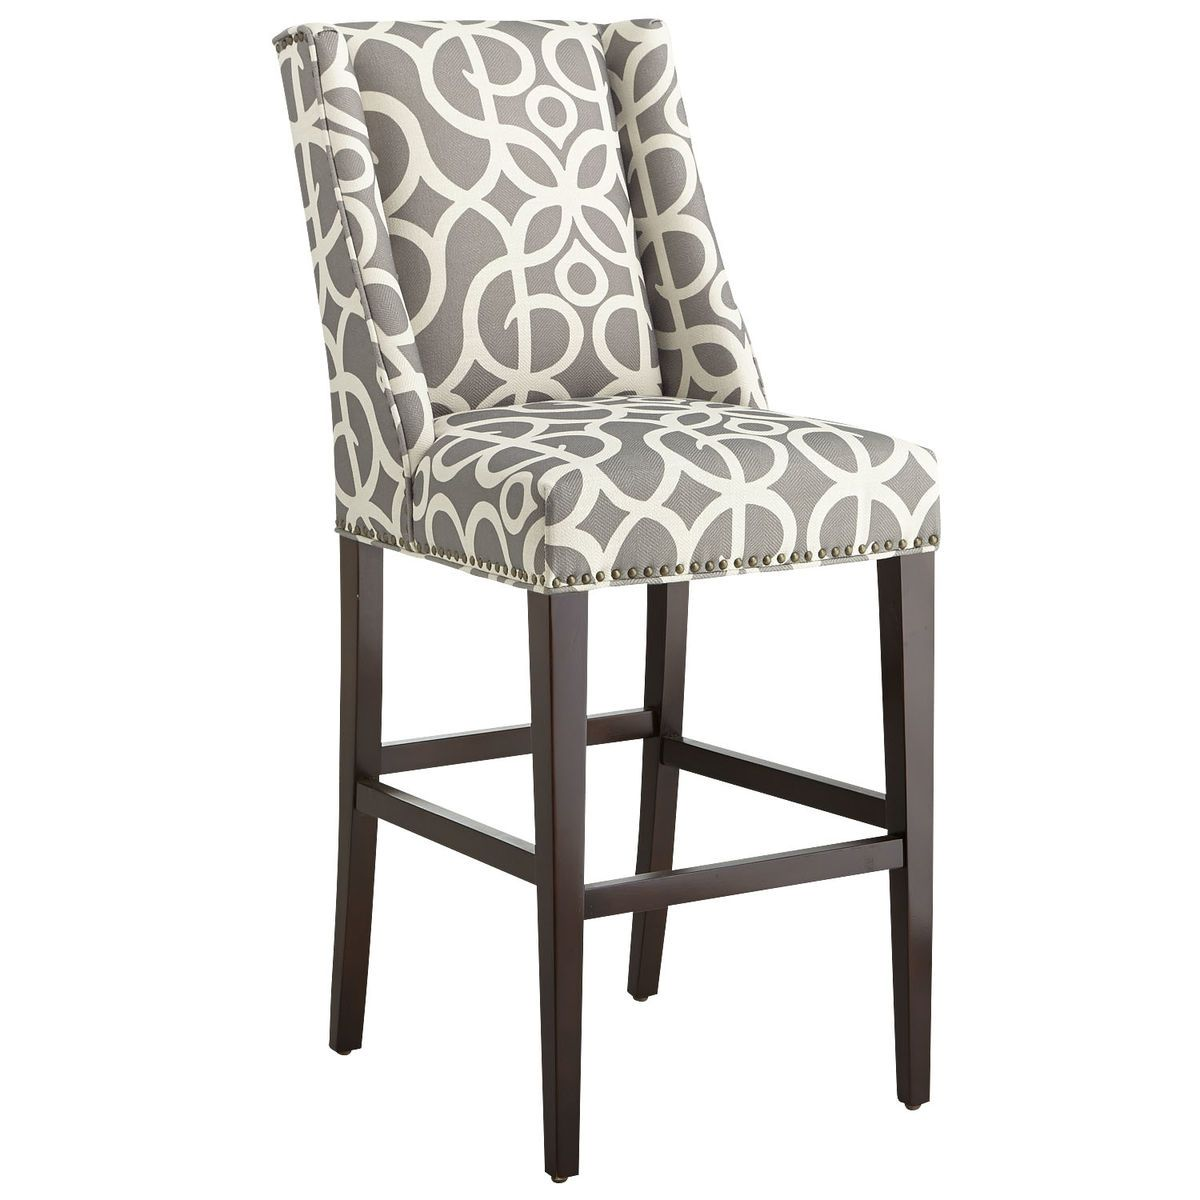 Terrific Owen Pewter Bar Counter Stool Pier 1 Imports Bar Cjindustries Chair Design For Home Cjindustriesco